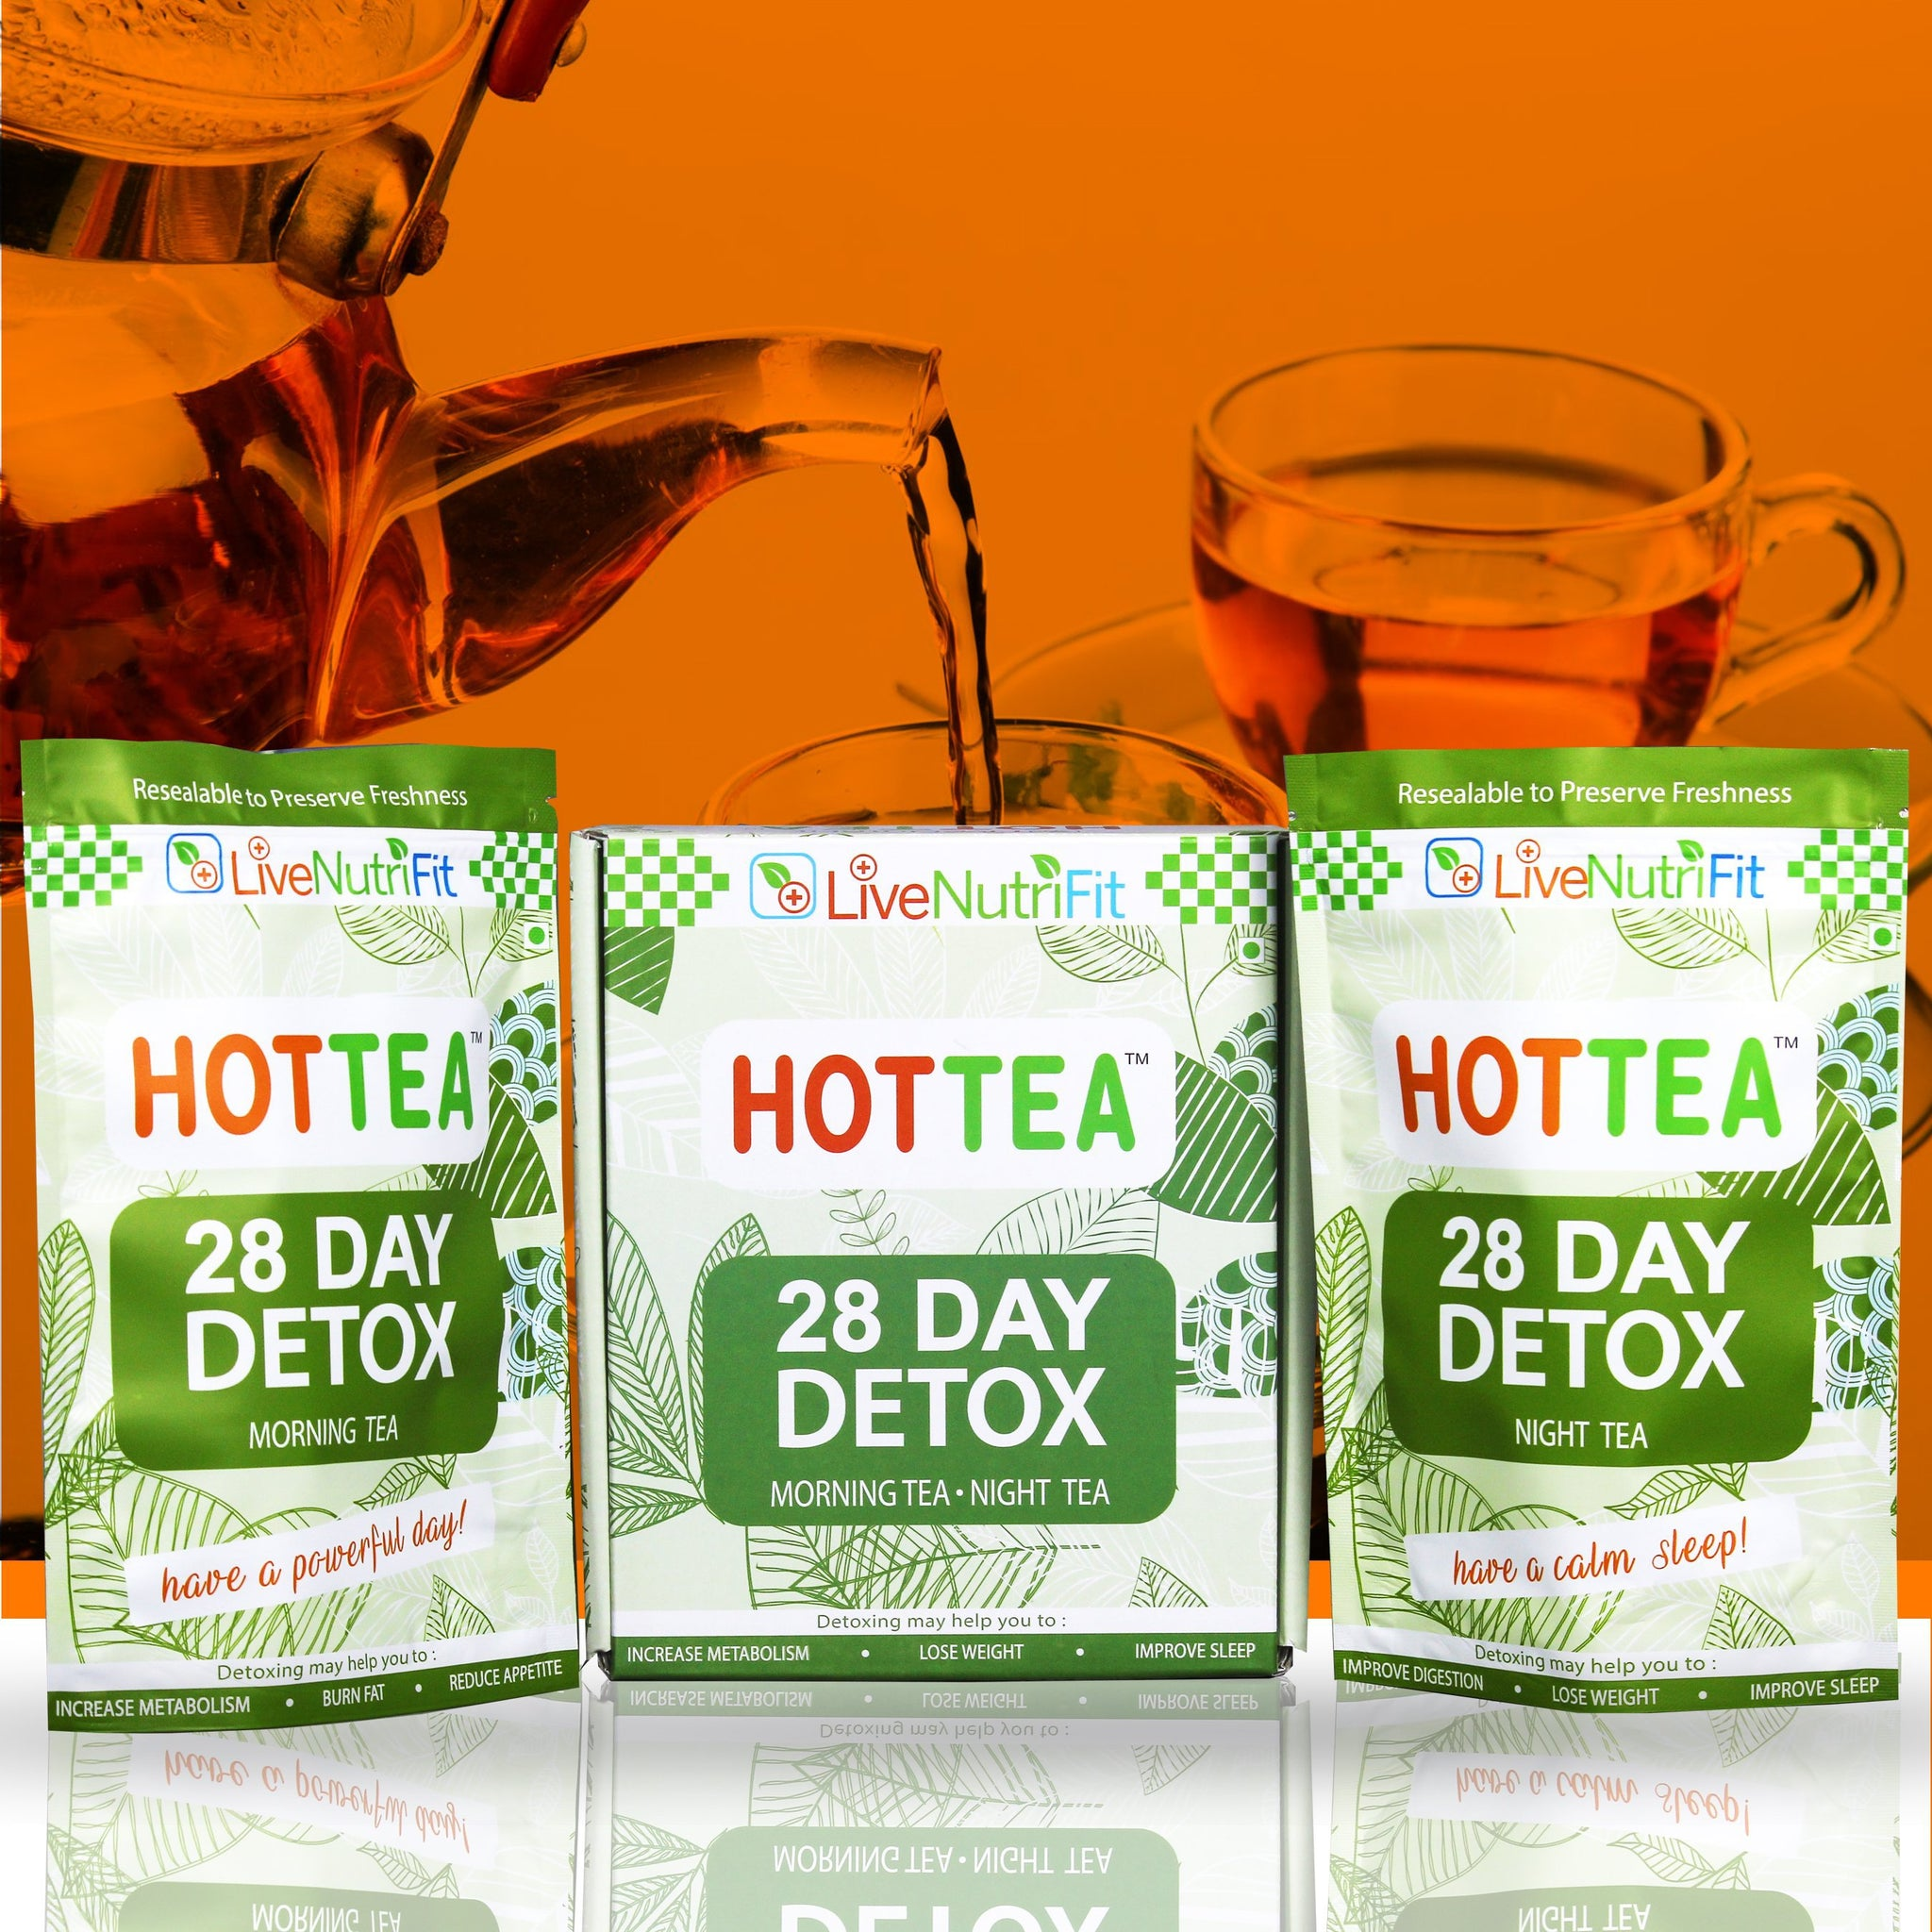 Hot tea for Weight Loss - 3 Months Detox - Day & Night + 1 Month Free